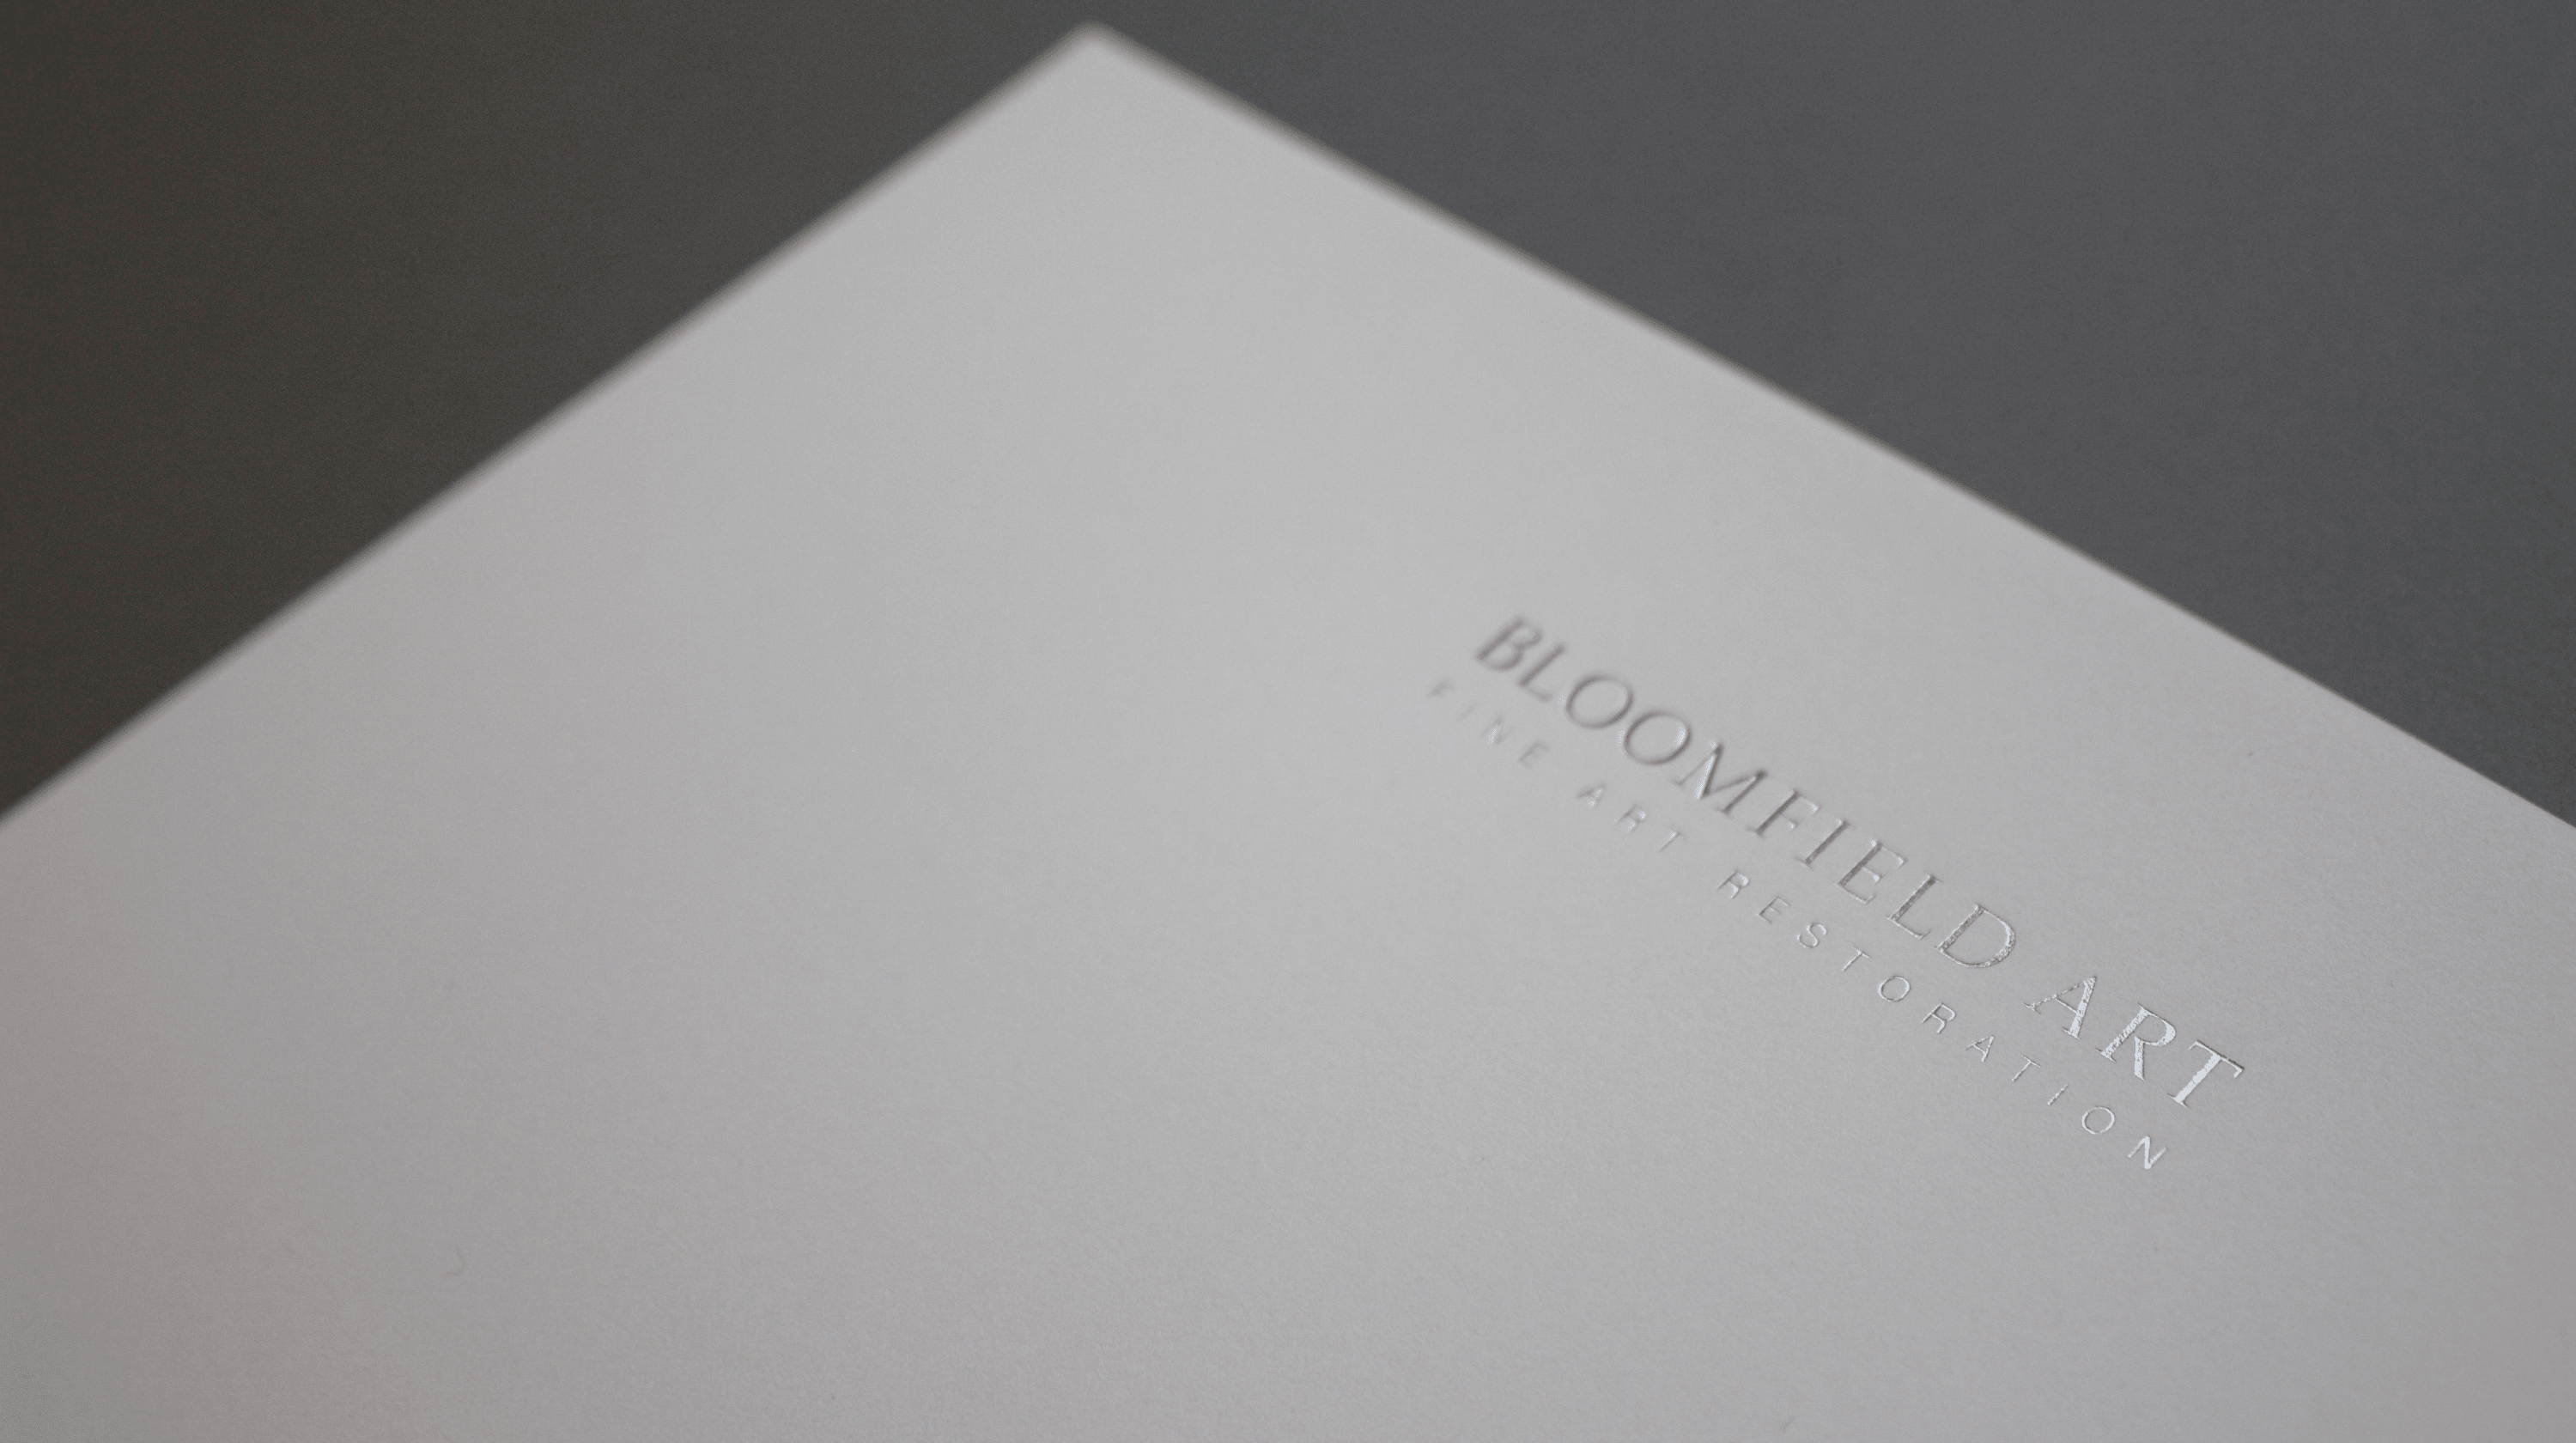 Letterhead with silver foil on the logo